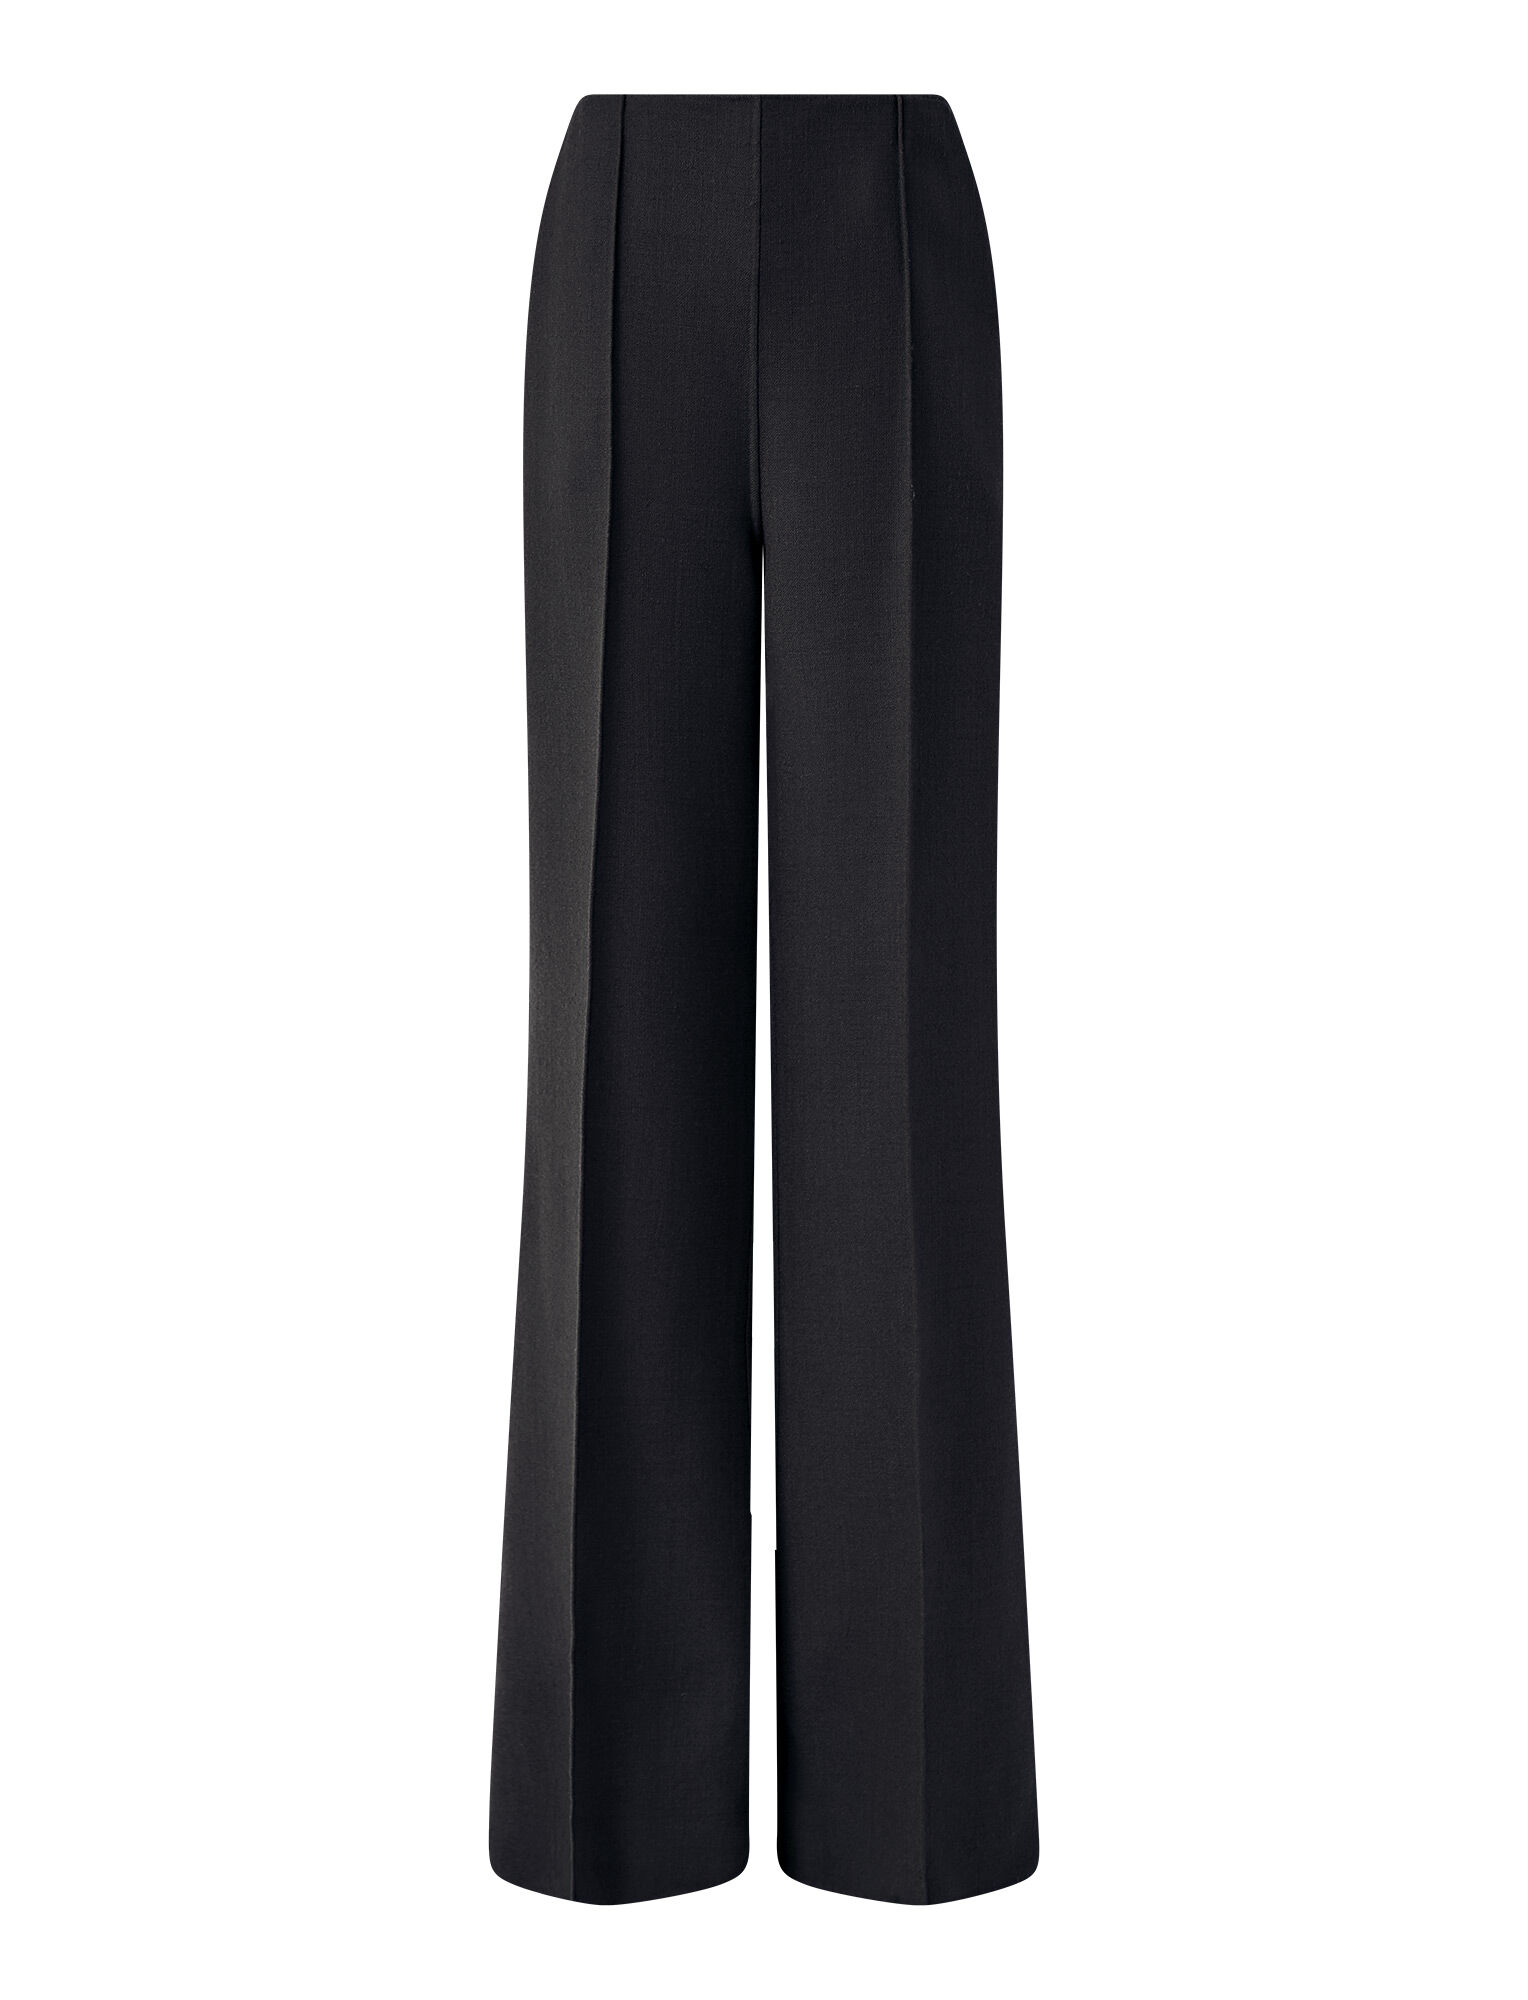 Joseph, Talou Stretch Double Face Trousers, in Navy